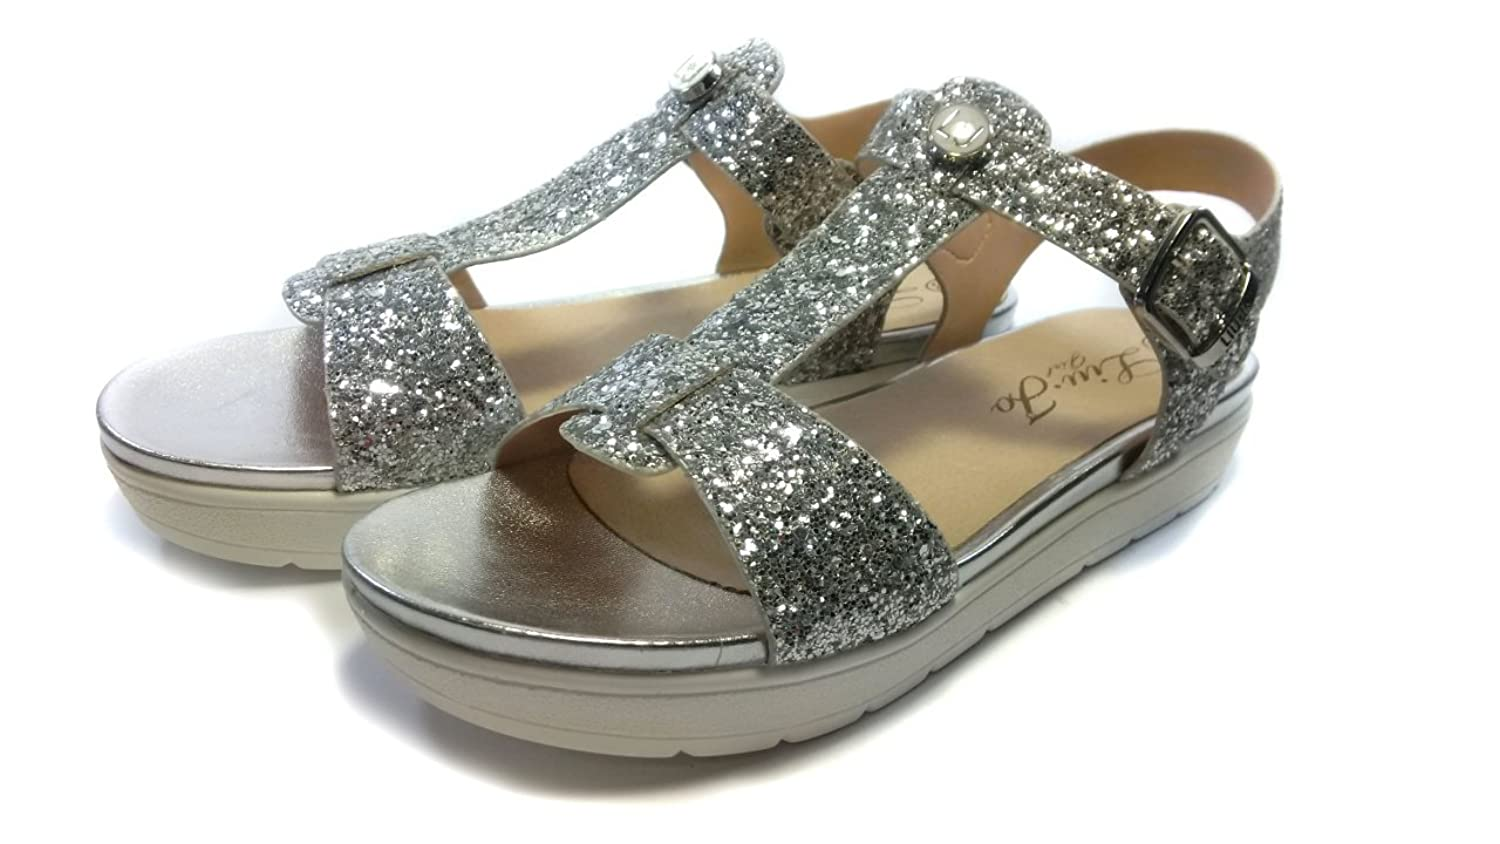 Liu Jo Sandale Glitter-Made in Italy MainApps 6238Y